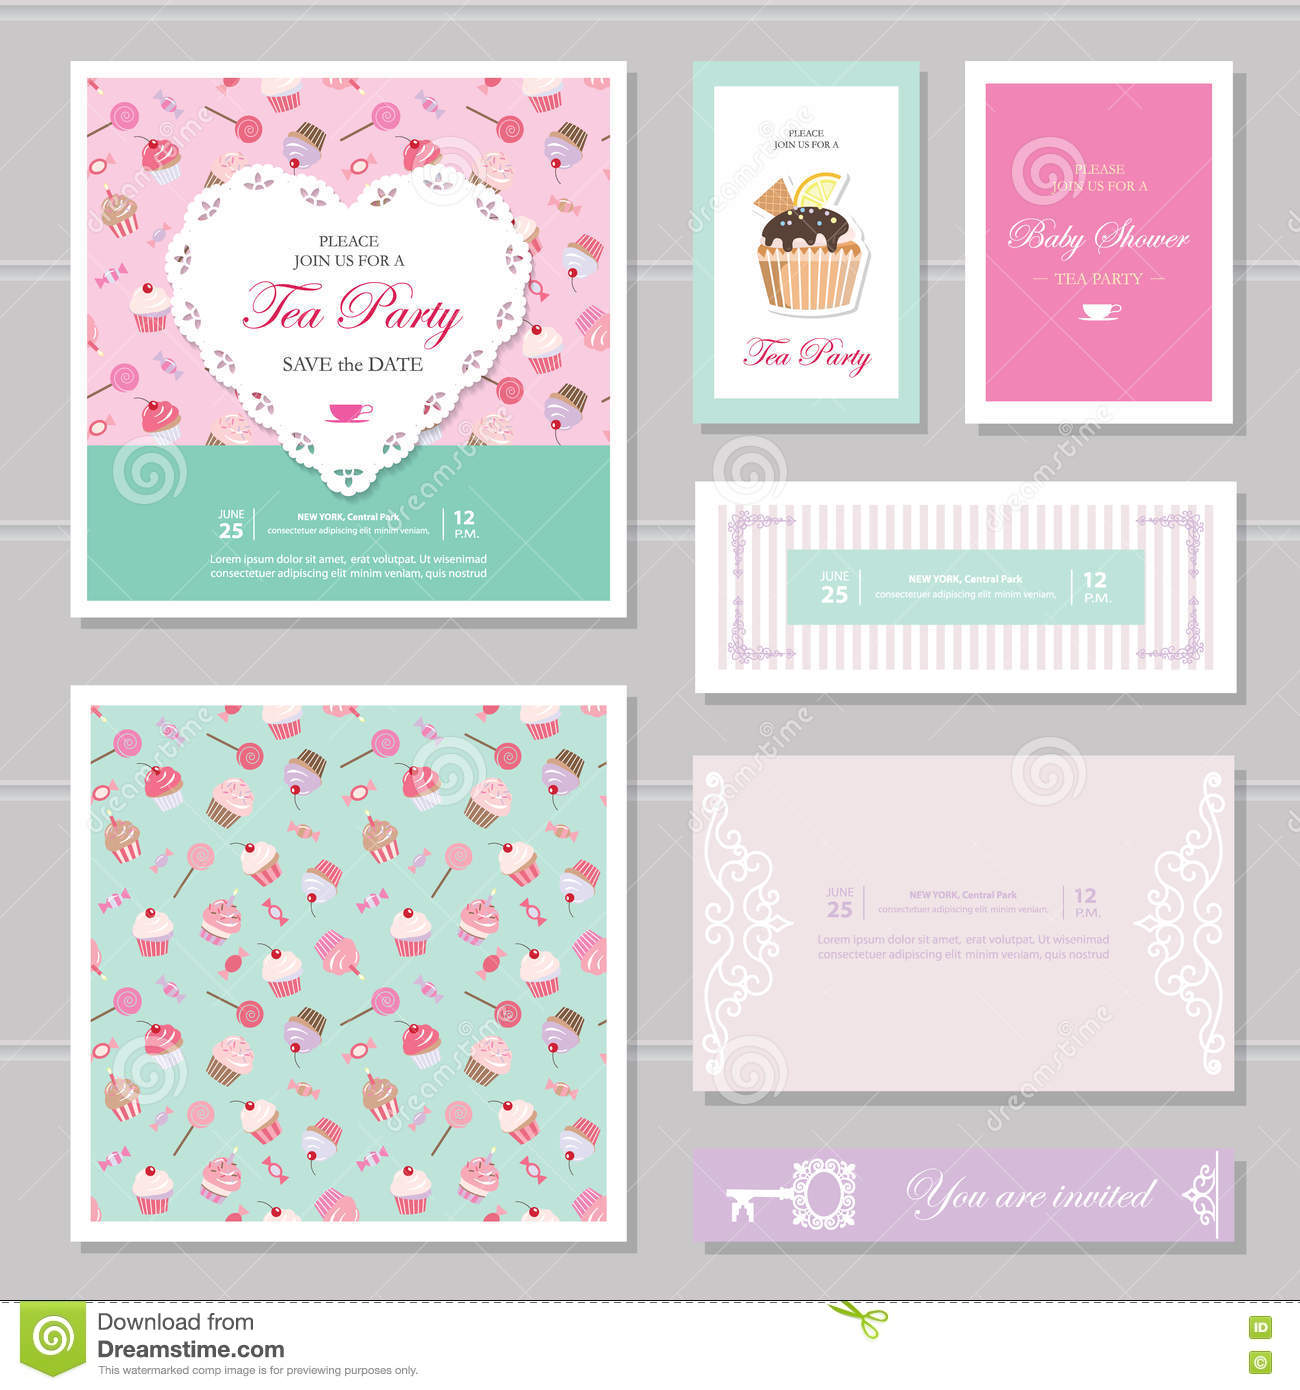 cute card templates set in pastel colors for save the date baby